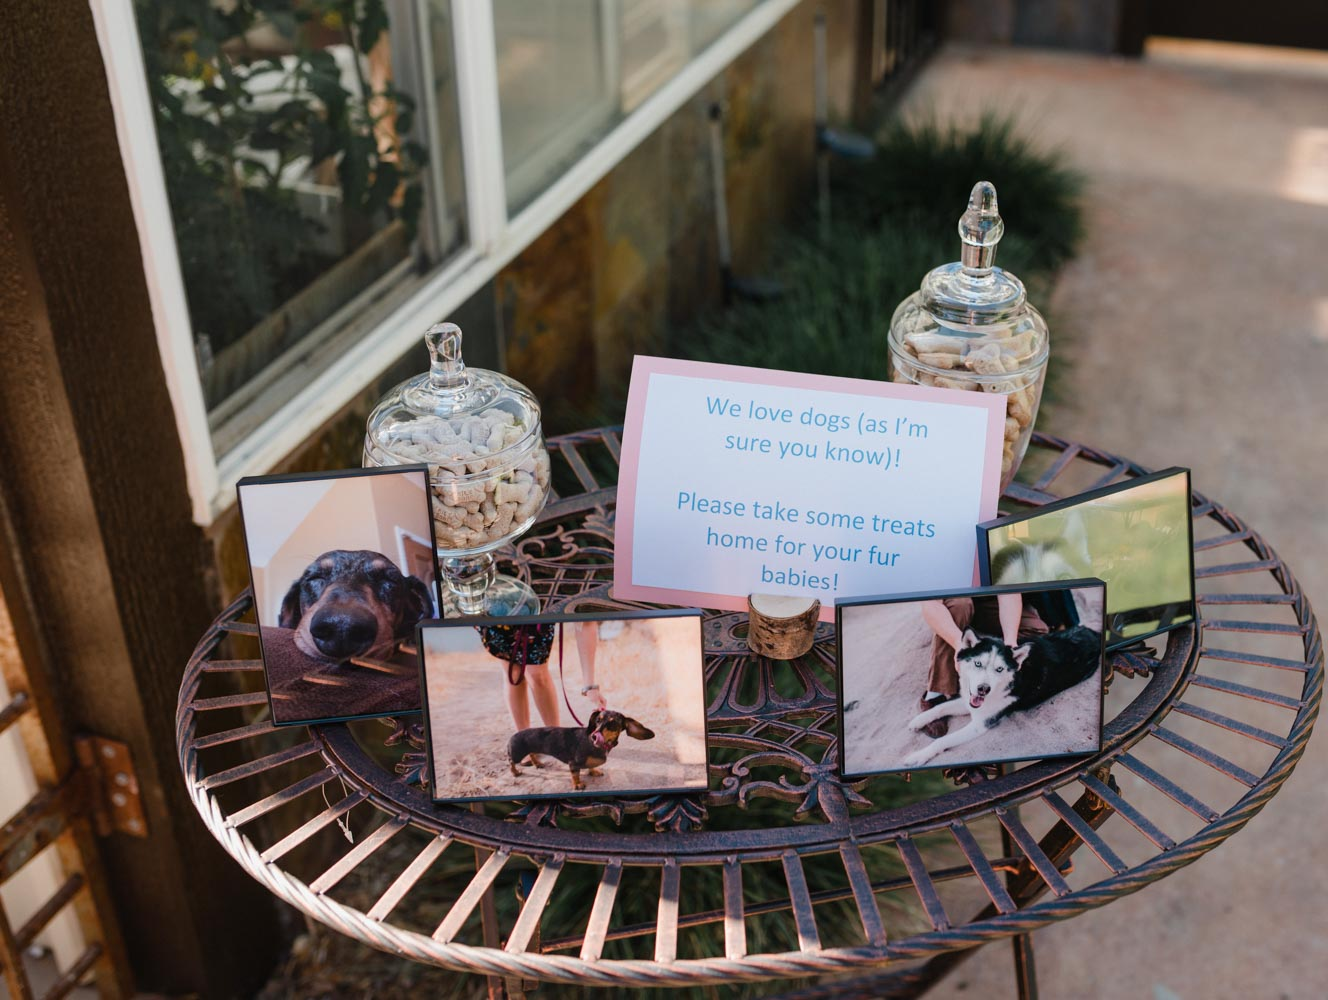 Metal table with photos of two dogs and jar filled with dog treats as wedding favors.